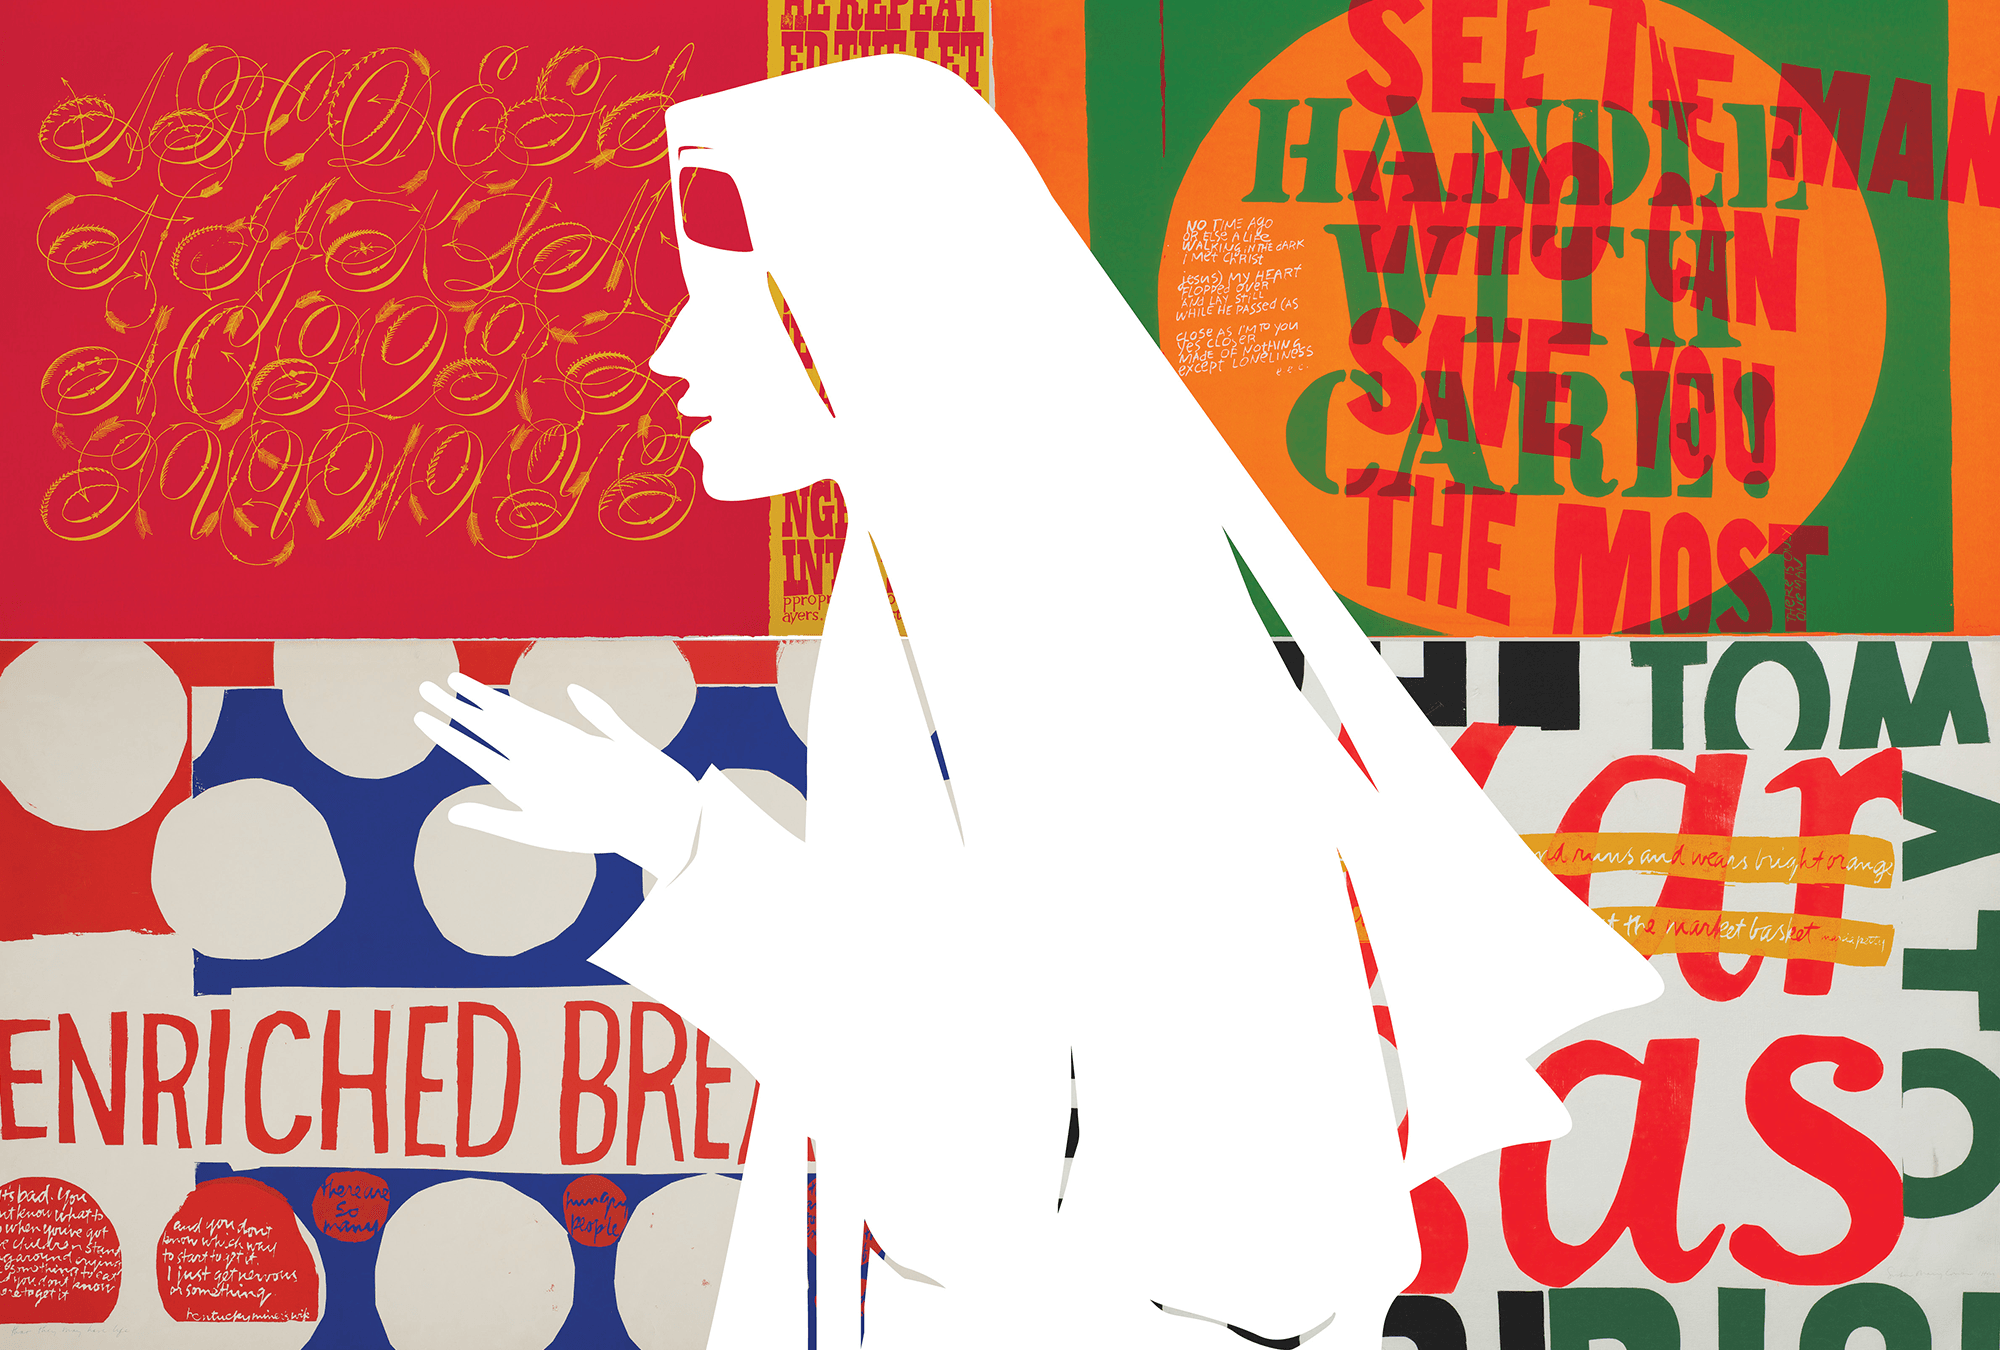 A collage of Corita Kent's artwork with a silhouette depiction of her in her nun's habit.